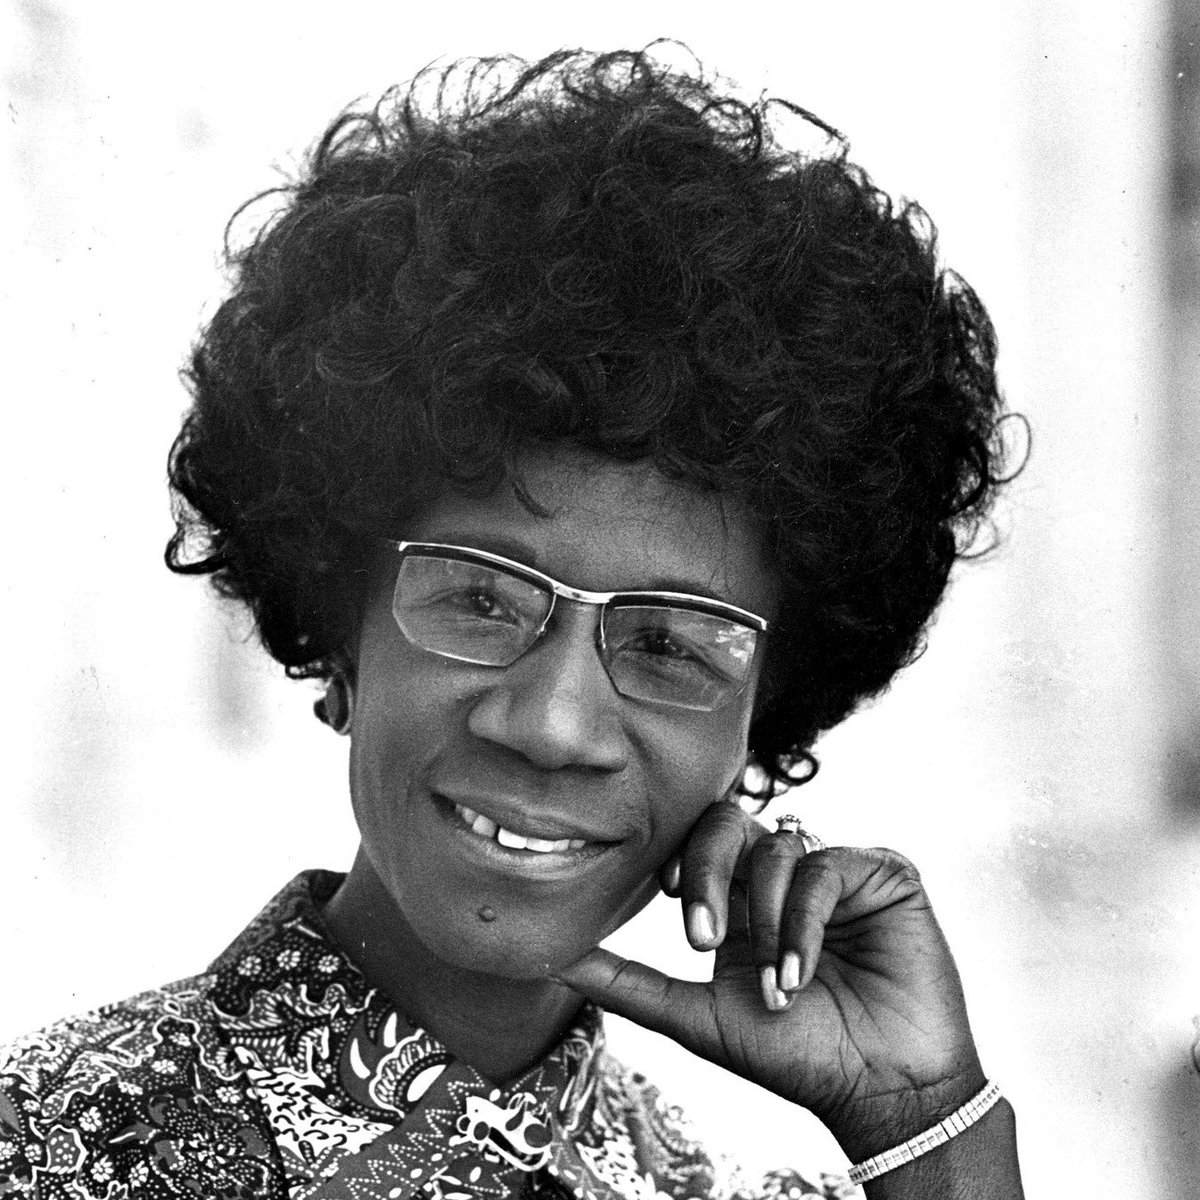 We honor the first African American woman elected to Congress and @OfficialCBC Co-Founder Shirley Chisholm #WHM2016 https://t.co/NfDE58ipc4